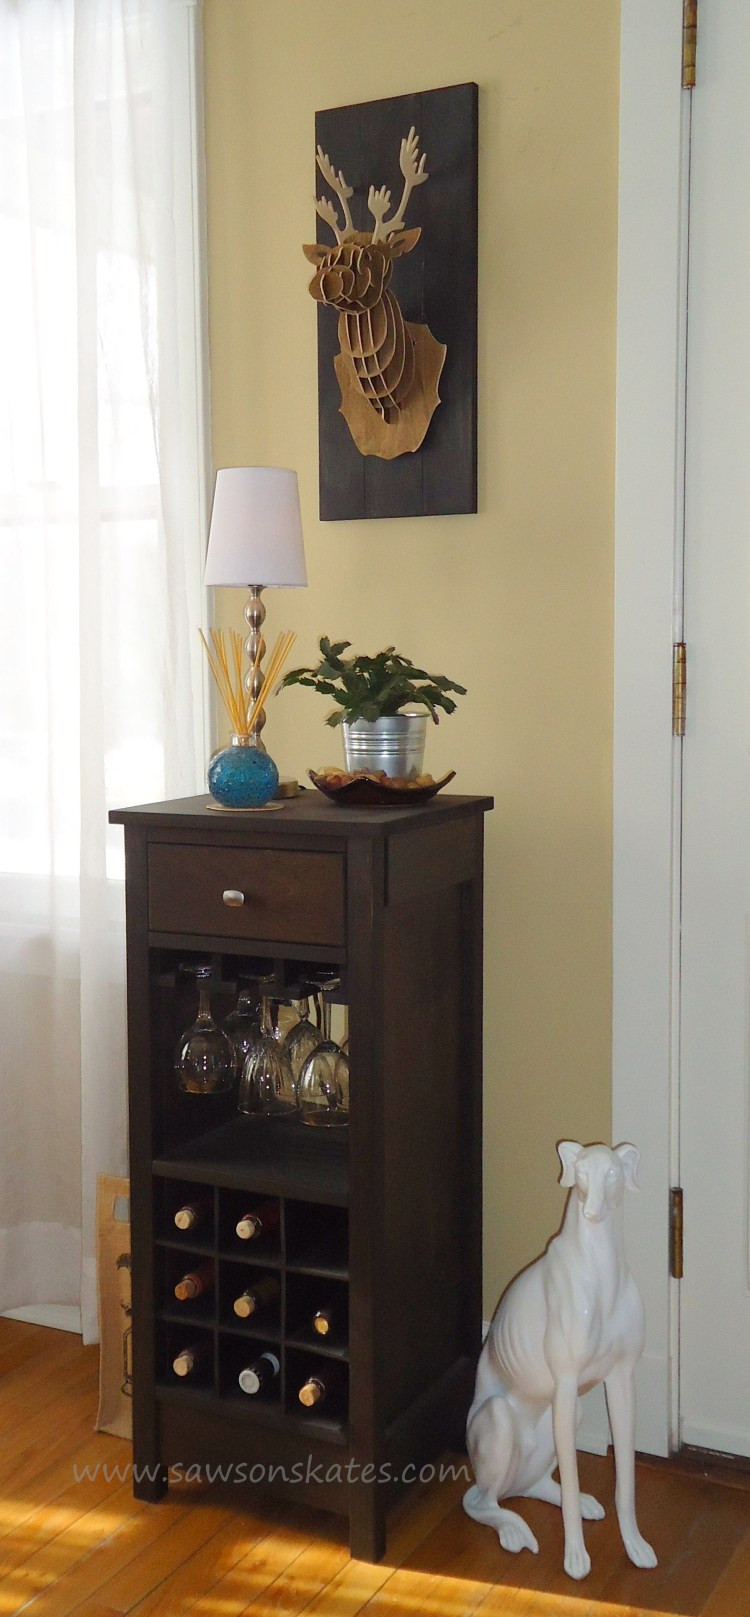 Best ideas about DIY Wine Cabinet . Save or Pin How to Build a DIY Wine Cabinet Now.